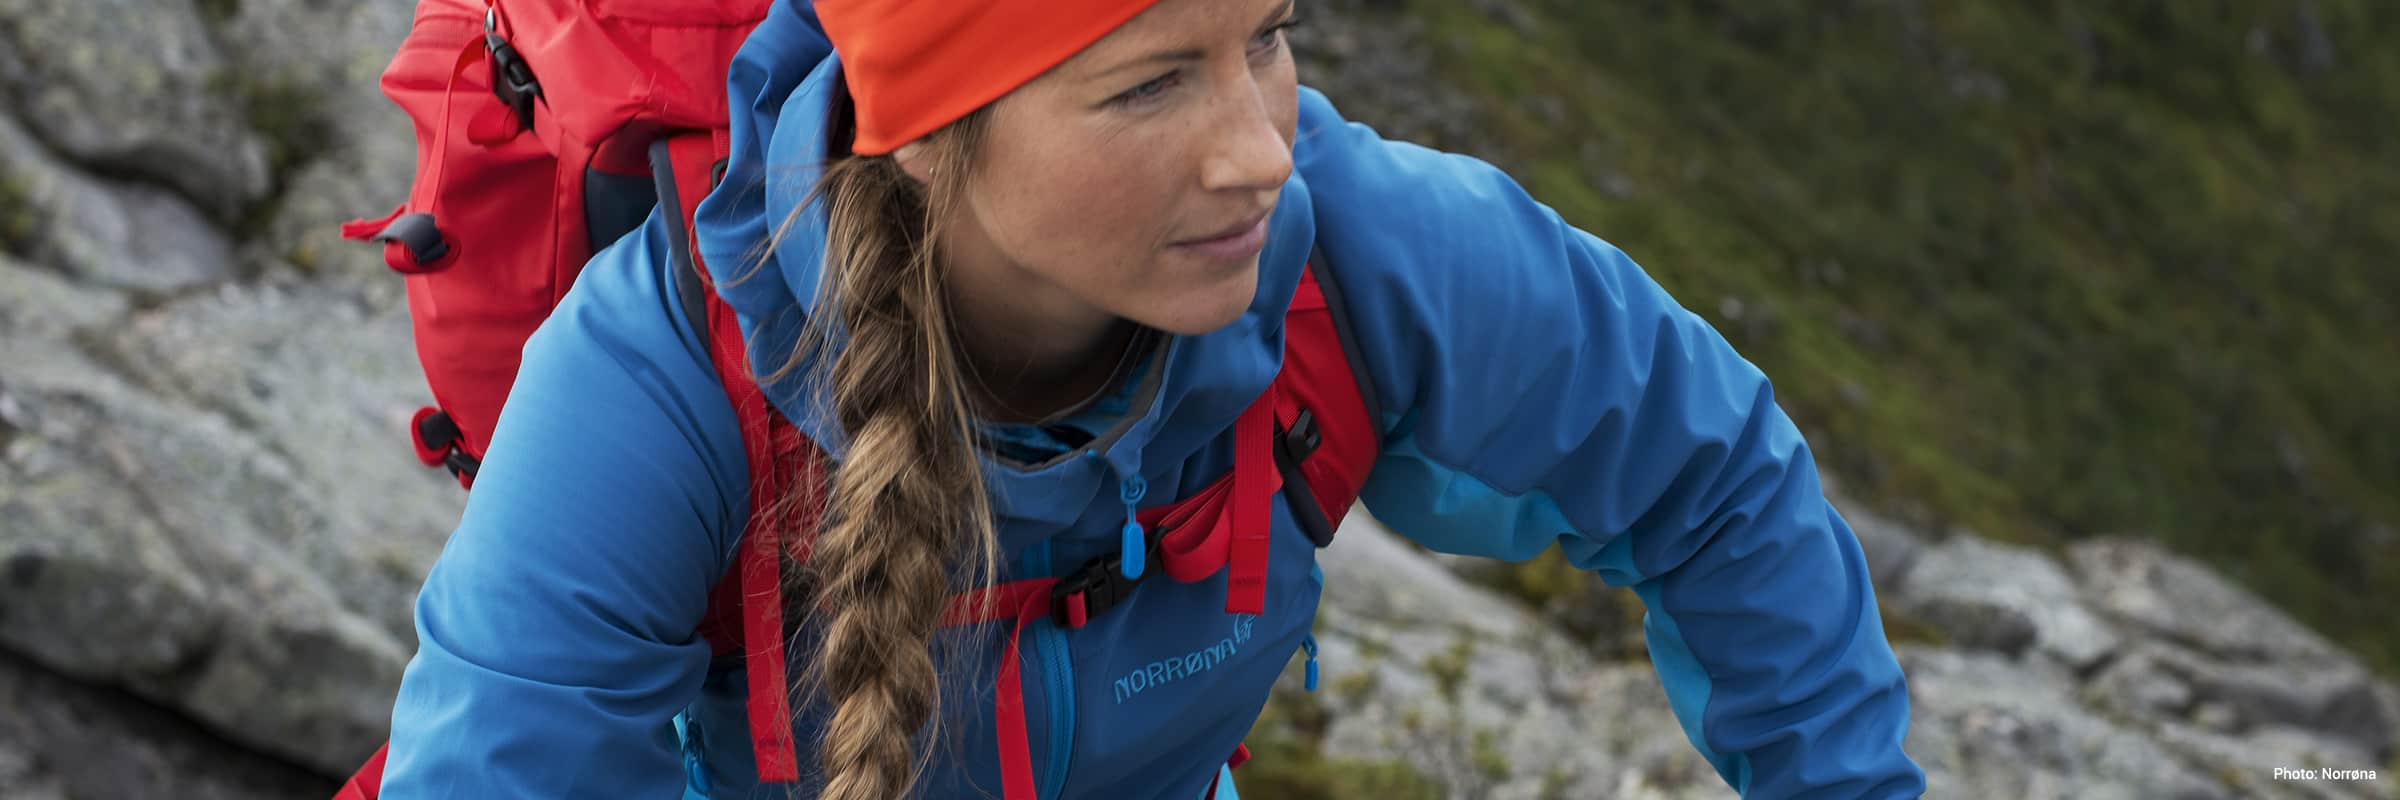 Arc'teryx, Mountain Hardwear, Norrona, Outdoor Research, The North Face. Our Top 6 Best Softshell Jackets For Women